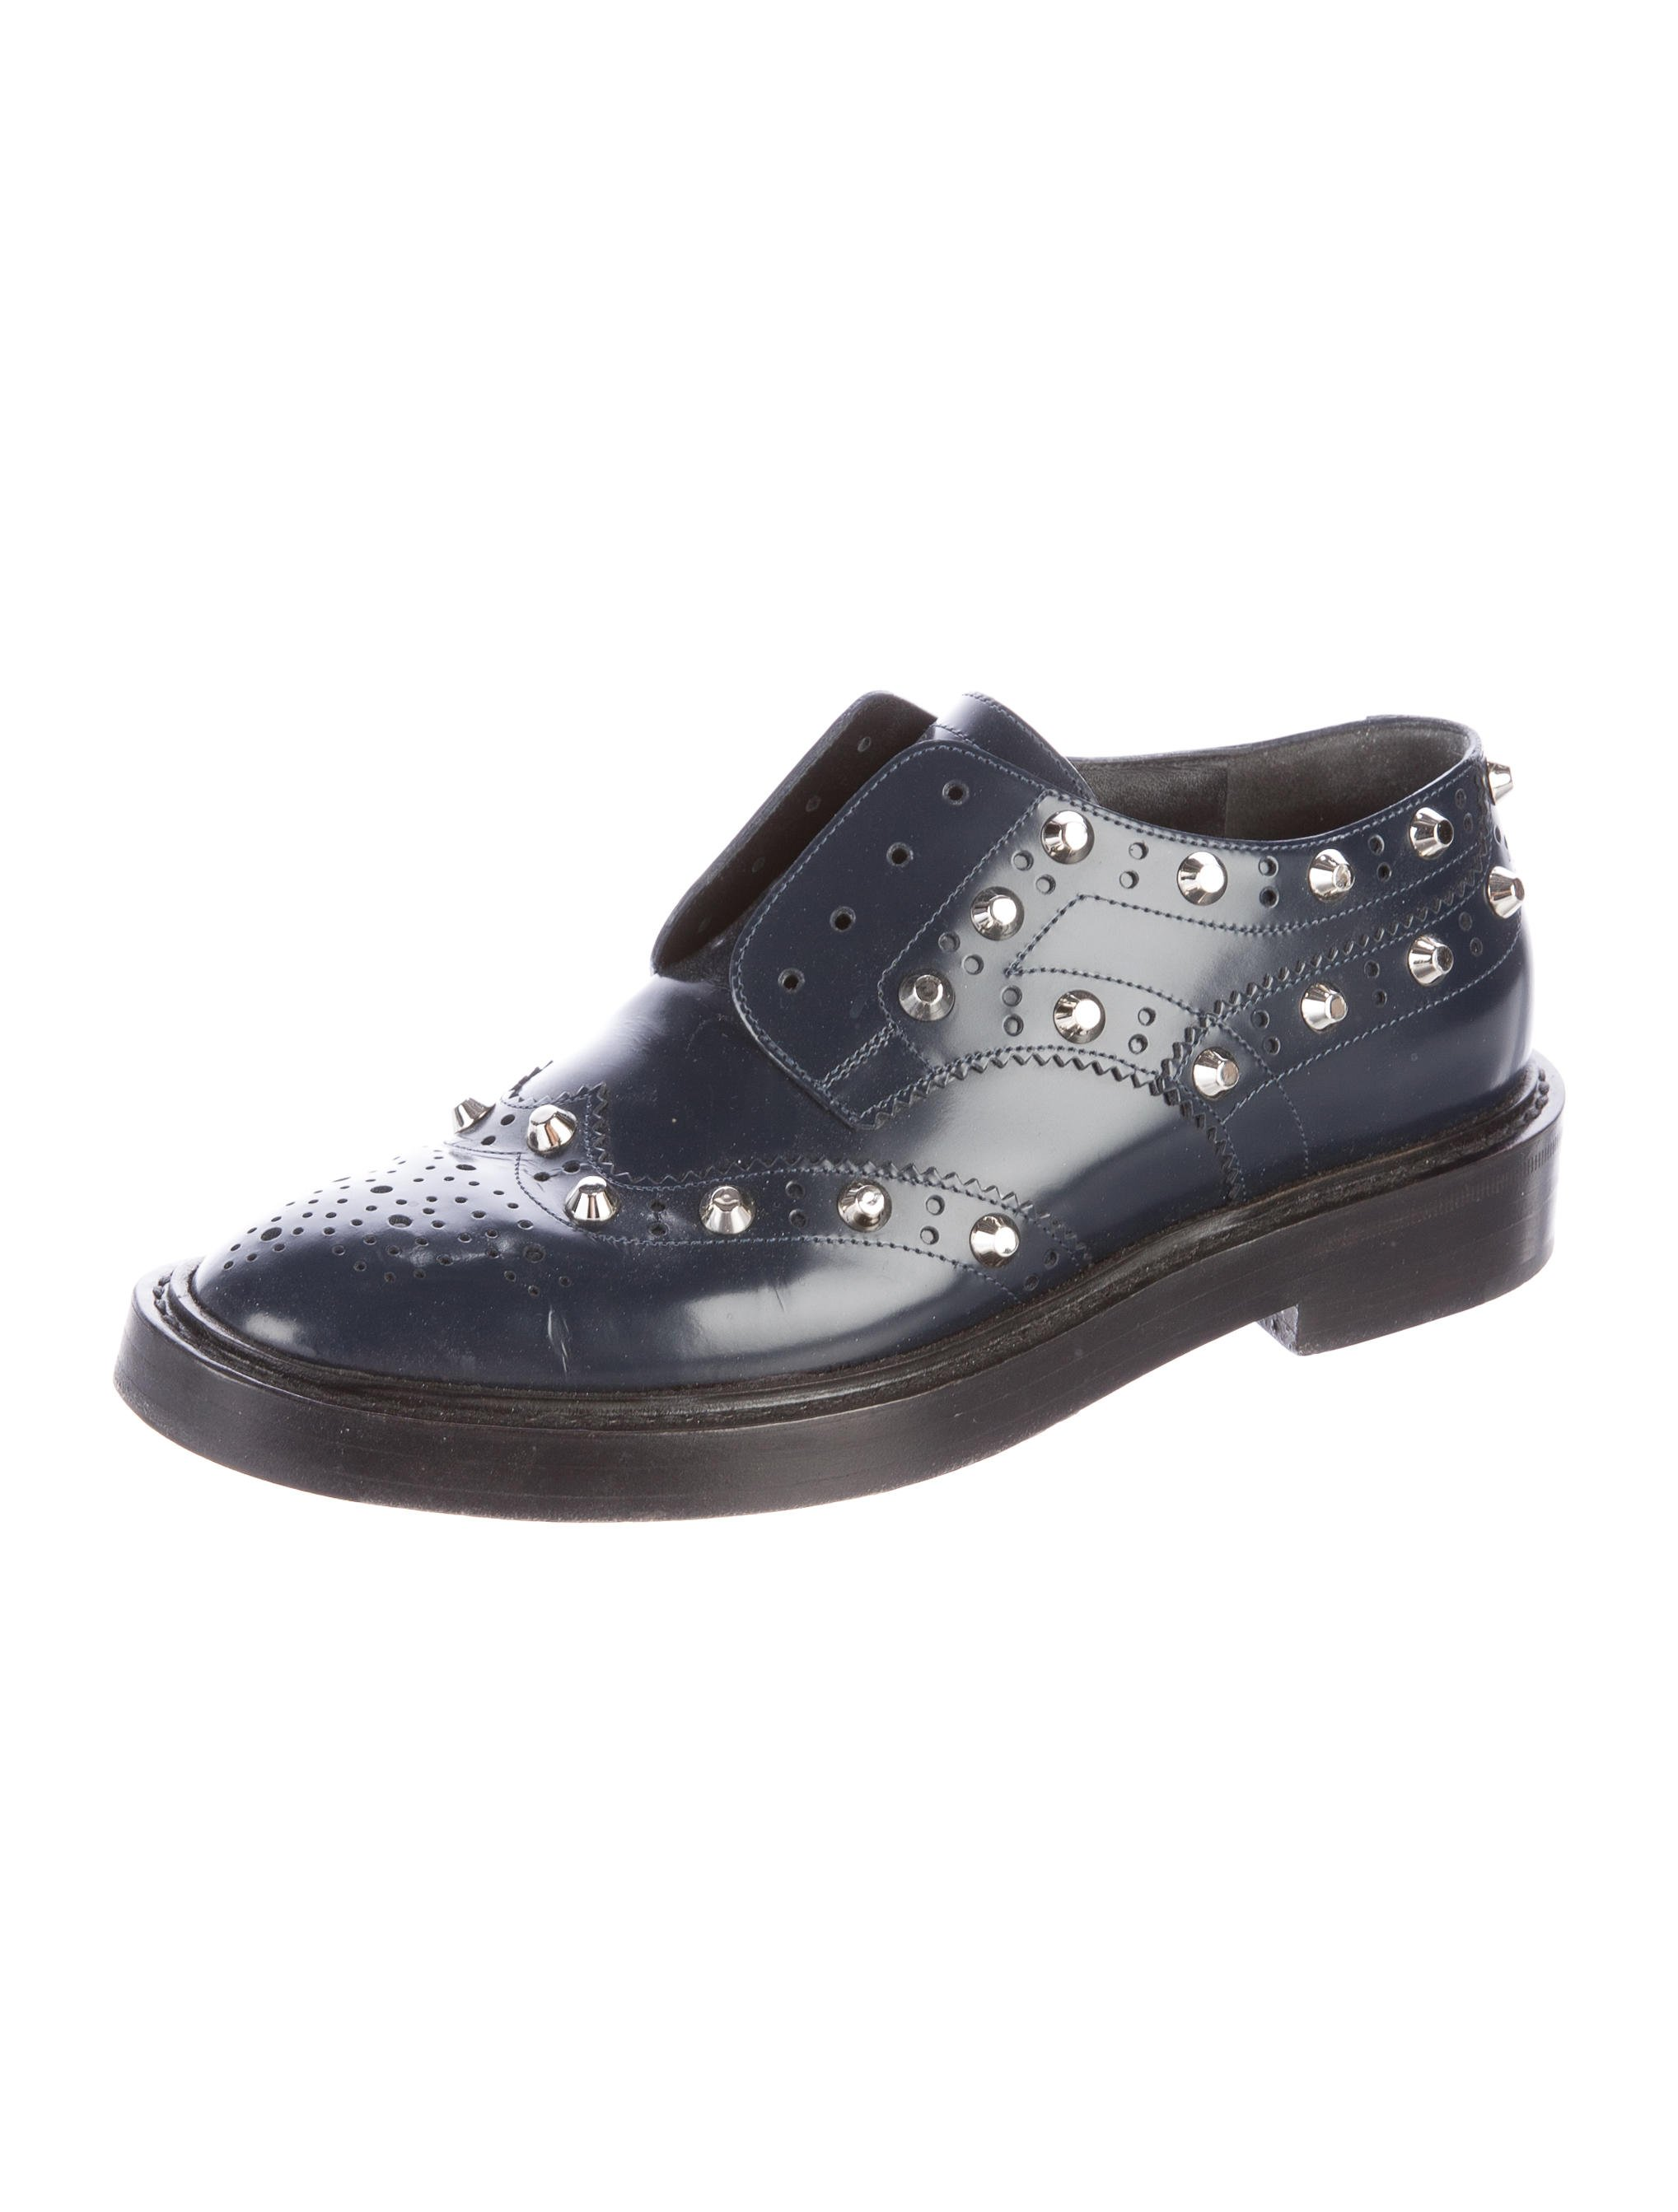 BALENCIAGA - LEATHER STUD-ACCENTED OXFORDS($425.00)